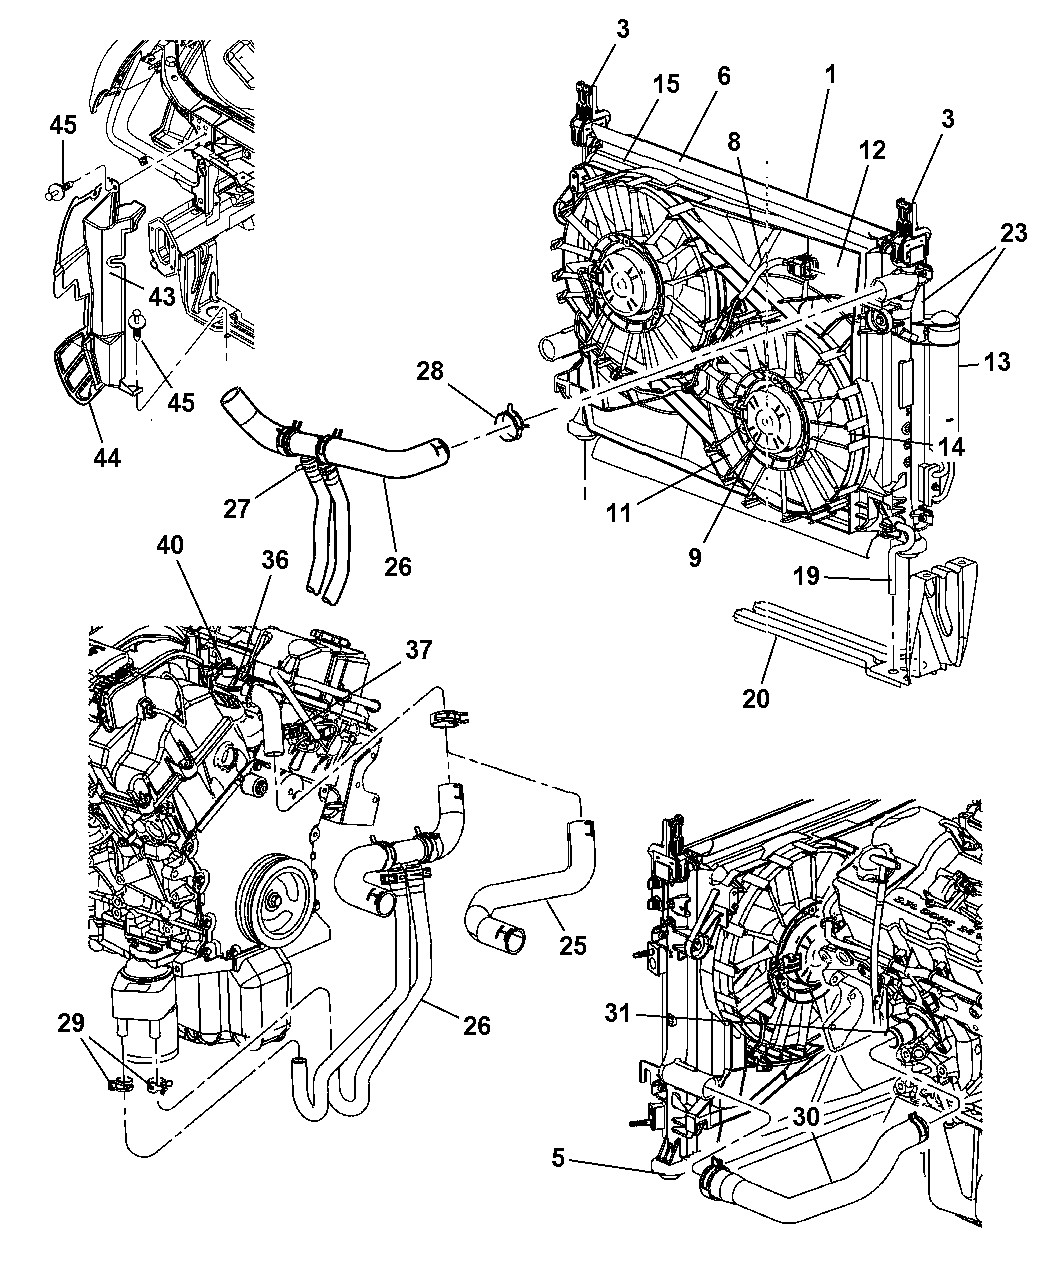 Engine Diagram 2015 Chrysler 200 2 4l. Chrysler. Auto